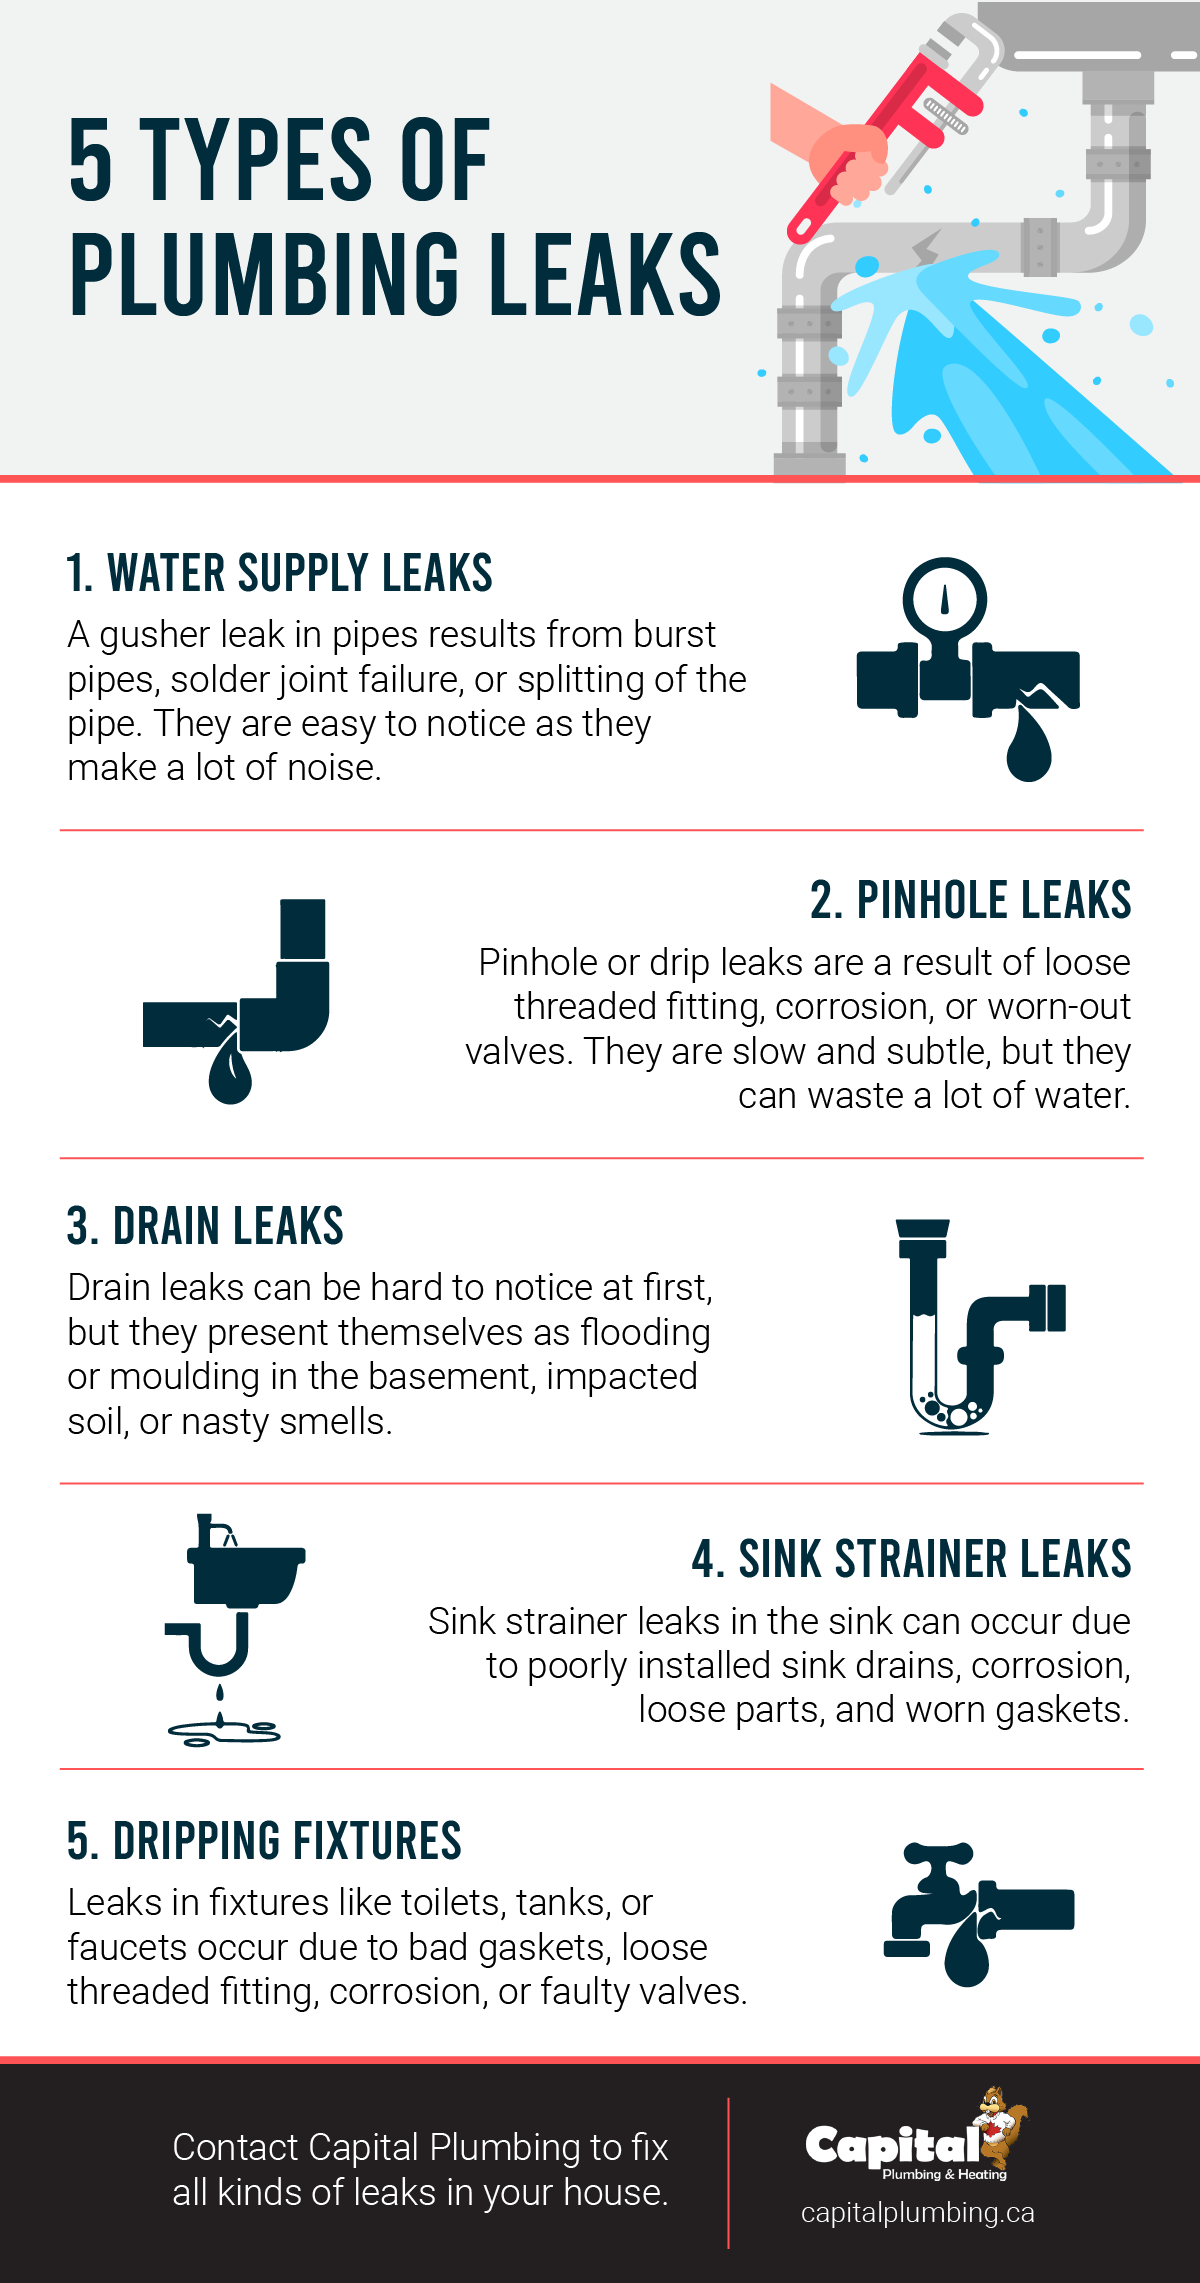 Types of Plumbing Leaks